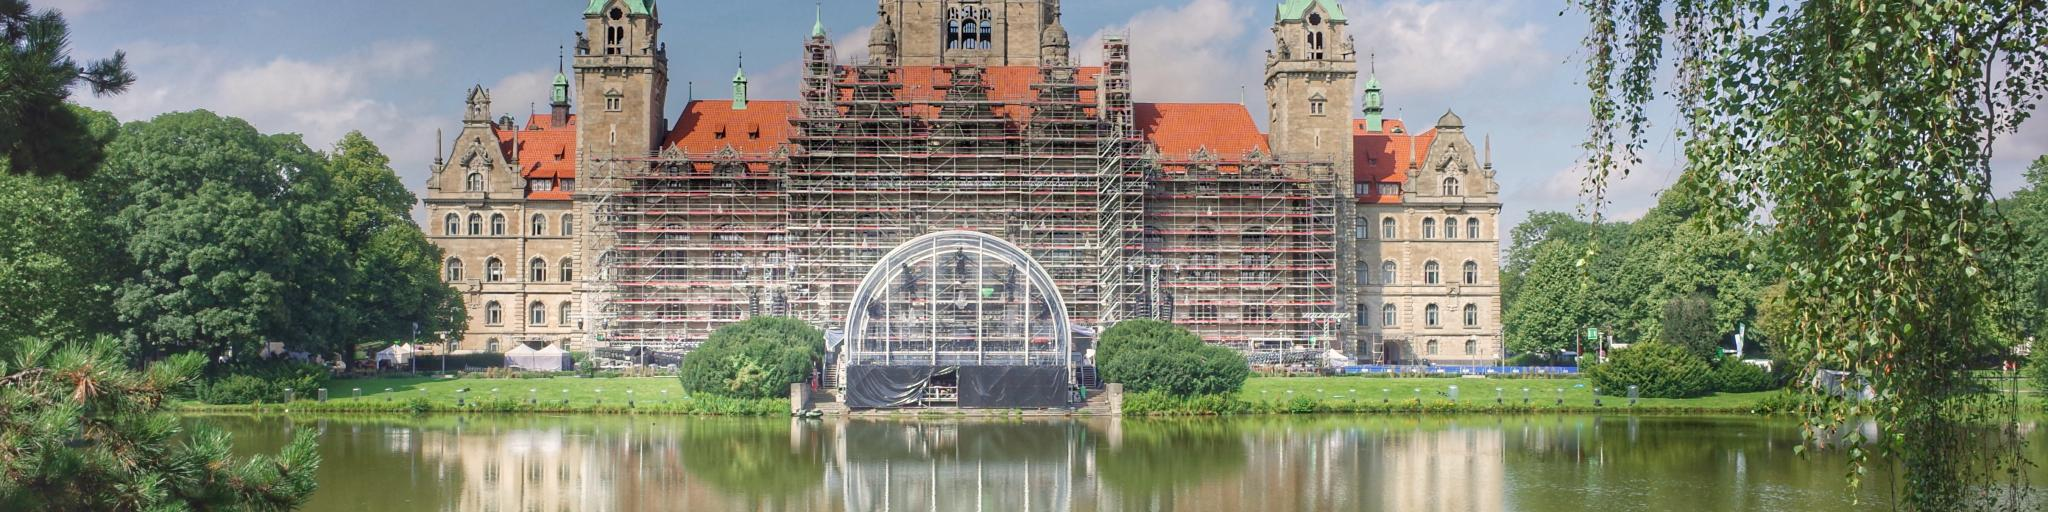 The castle-like New Town Hall sits in front of a lake in Hanover, Germany